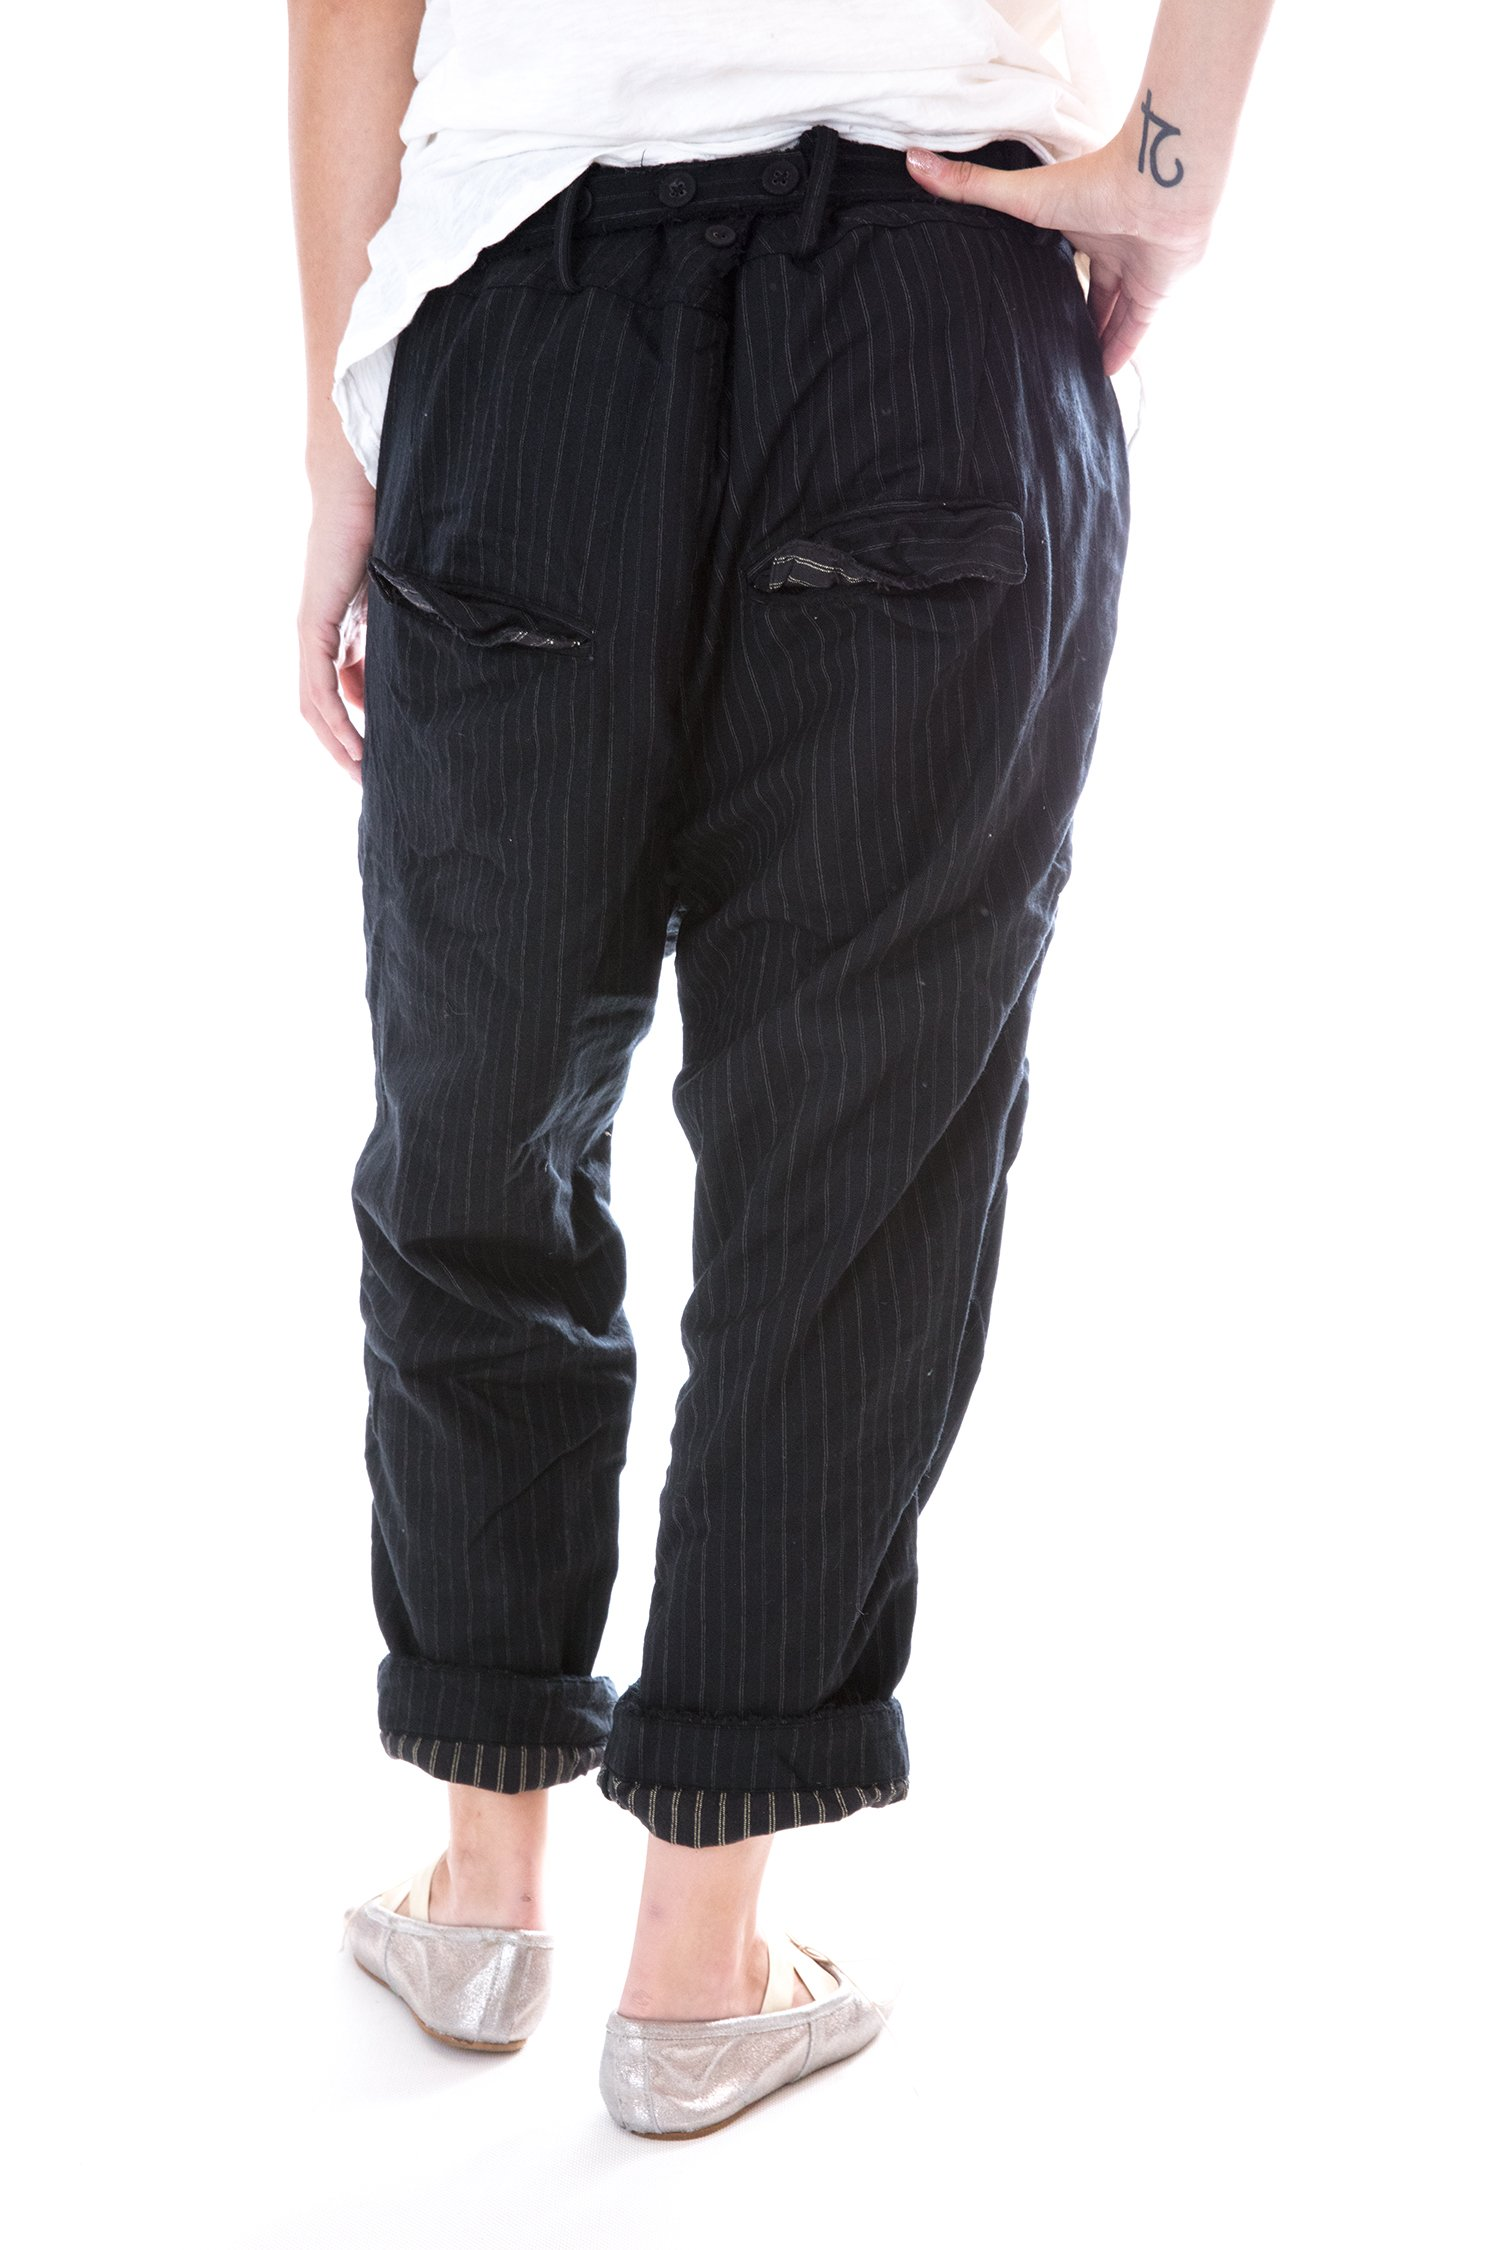 Fine Wool Violet Pants with Cotton Lining by Magnolia Pearl (Image #2)